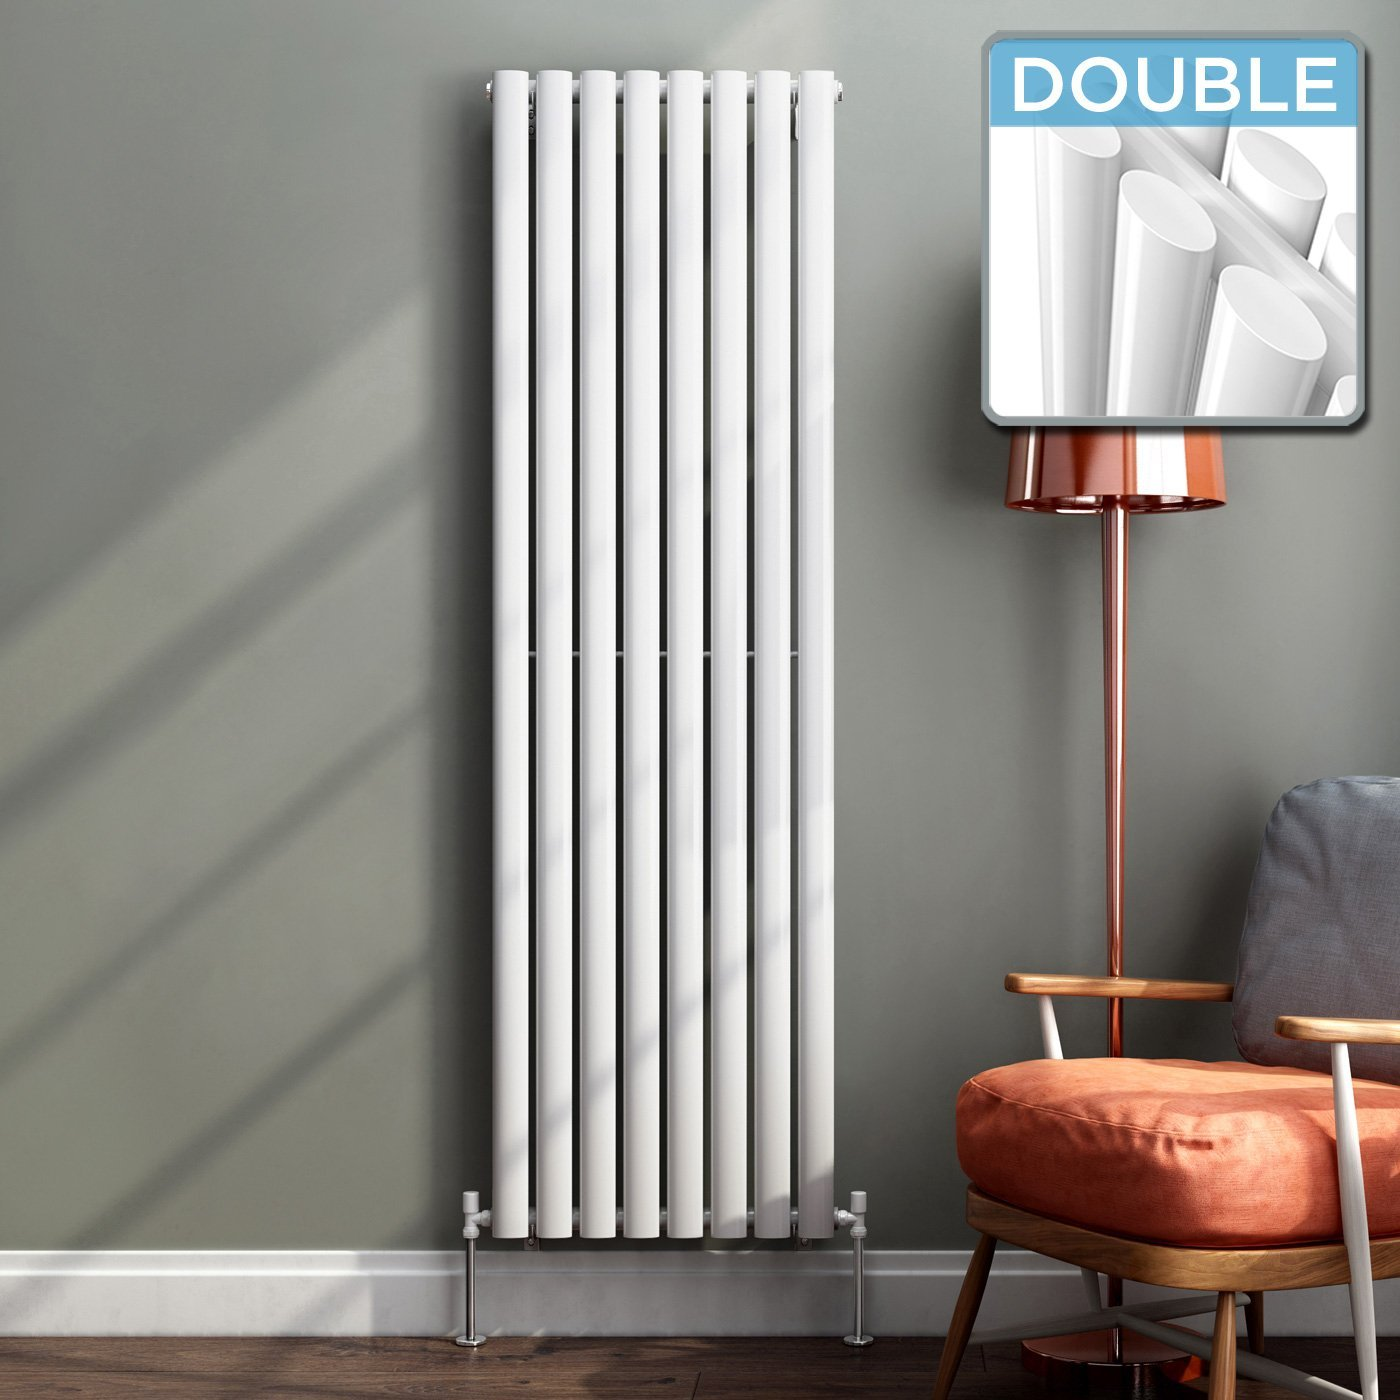 iBathUK 1600 x 480 mm Vertical Column Radiator